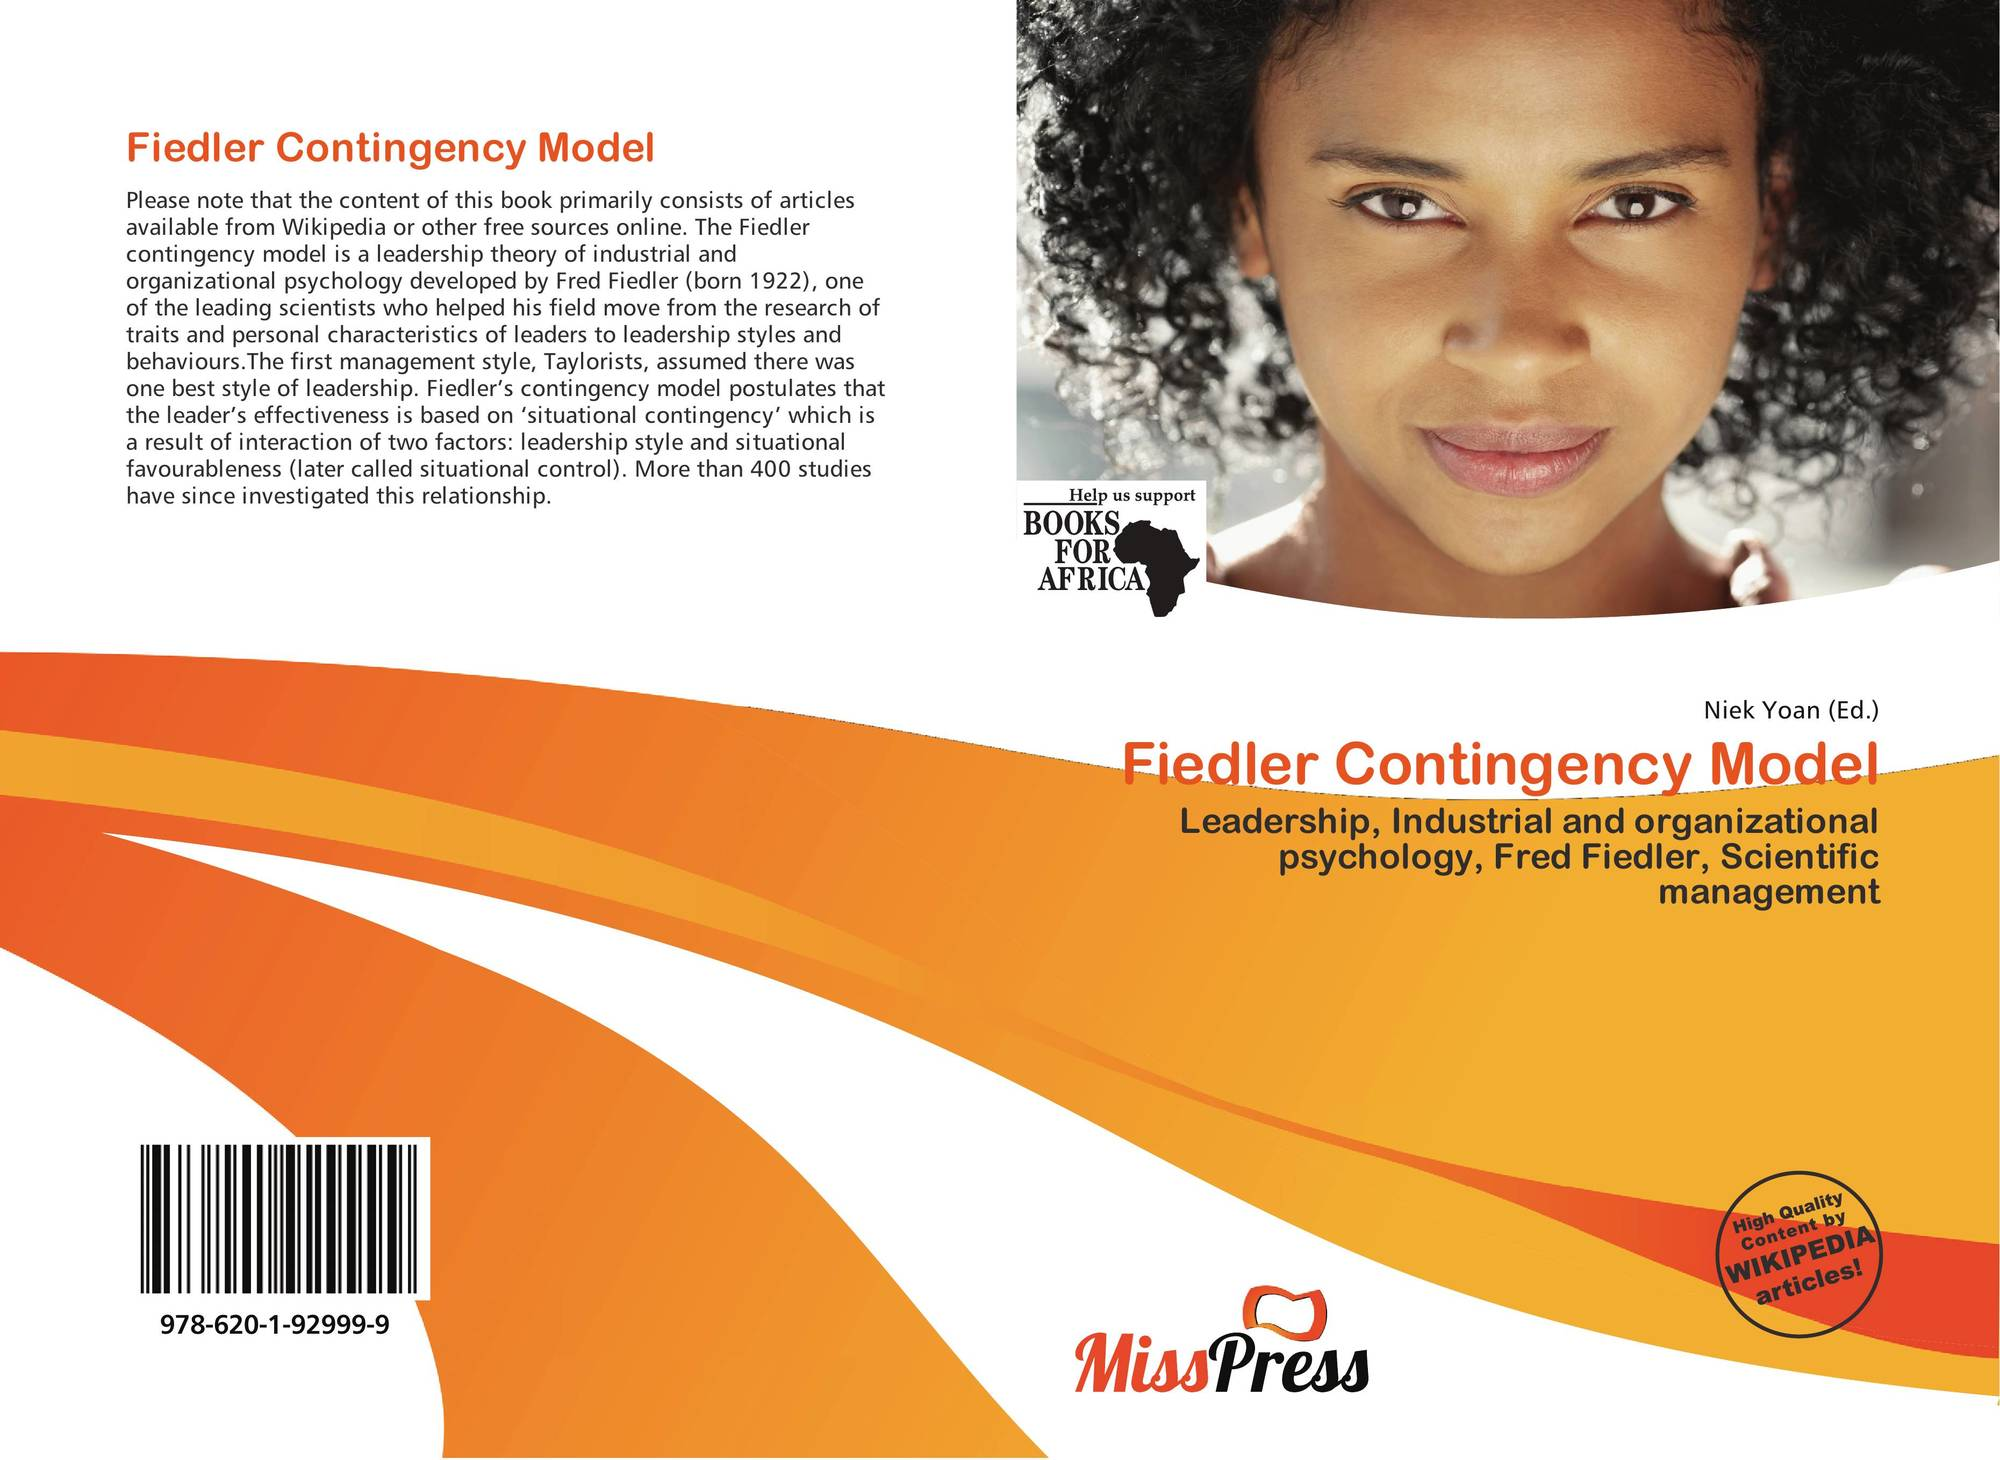 fiedler s contingency model organizational model 124 what is the role of the context contingency approaches to leadership identify the conditions under which highly task-oriented and highly people-oriented leaders can be successful based on fiedler's contingency theory management of organizational behavior.